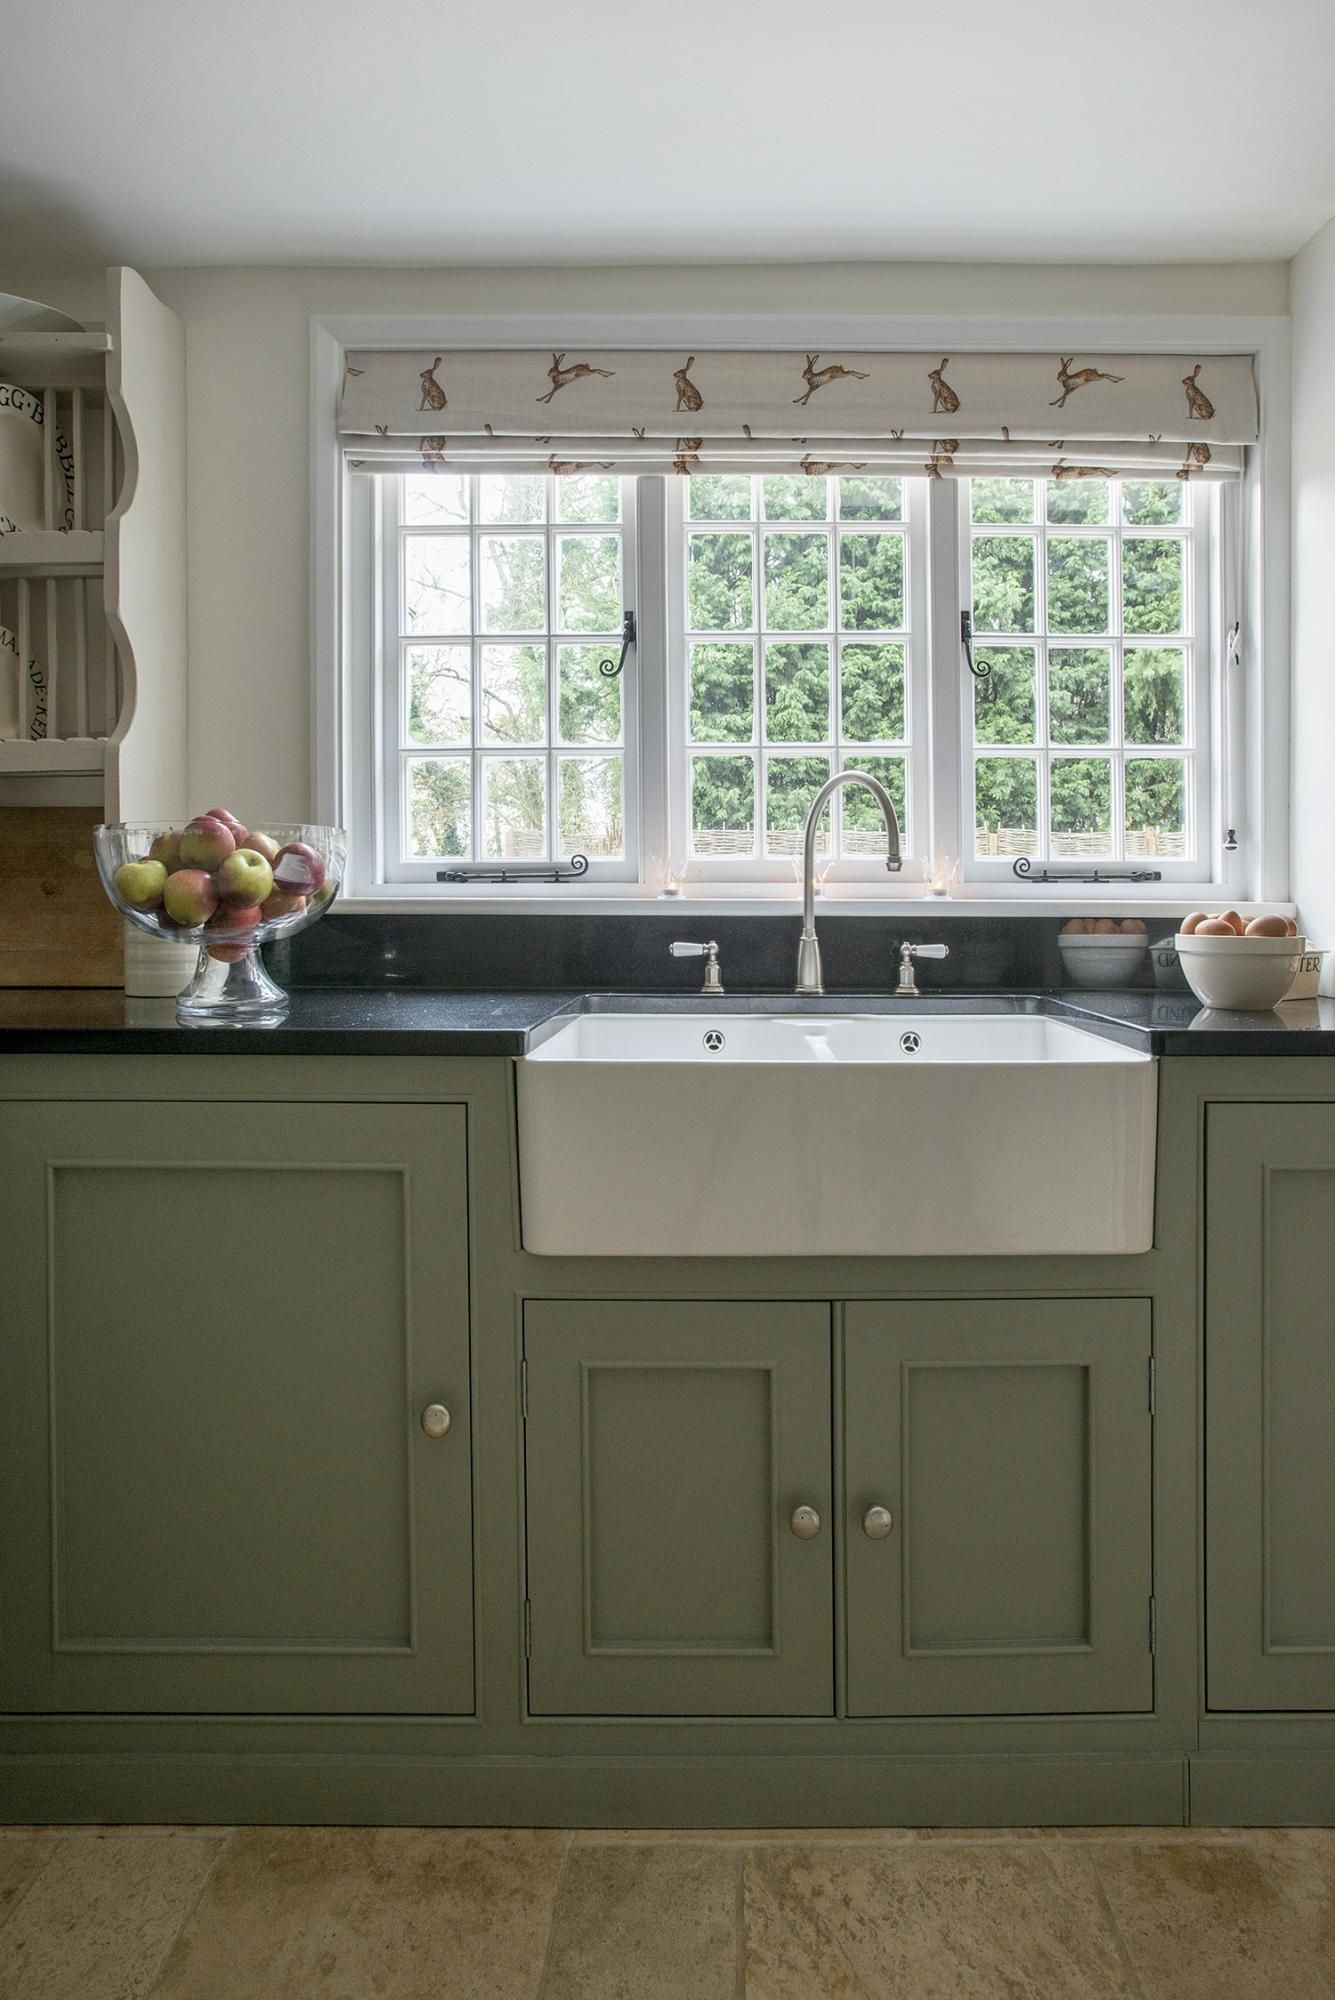 Farmhouse Country Kitchen Designs: Farmhouse Country Kitchens Design Sussex & Surrey